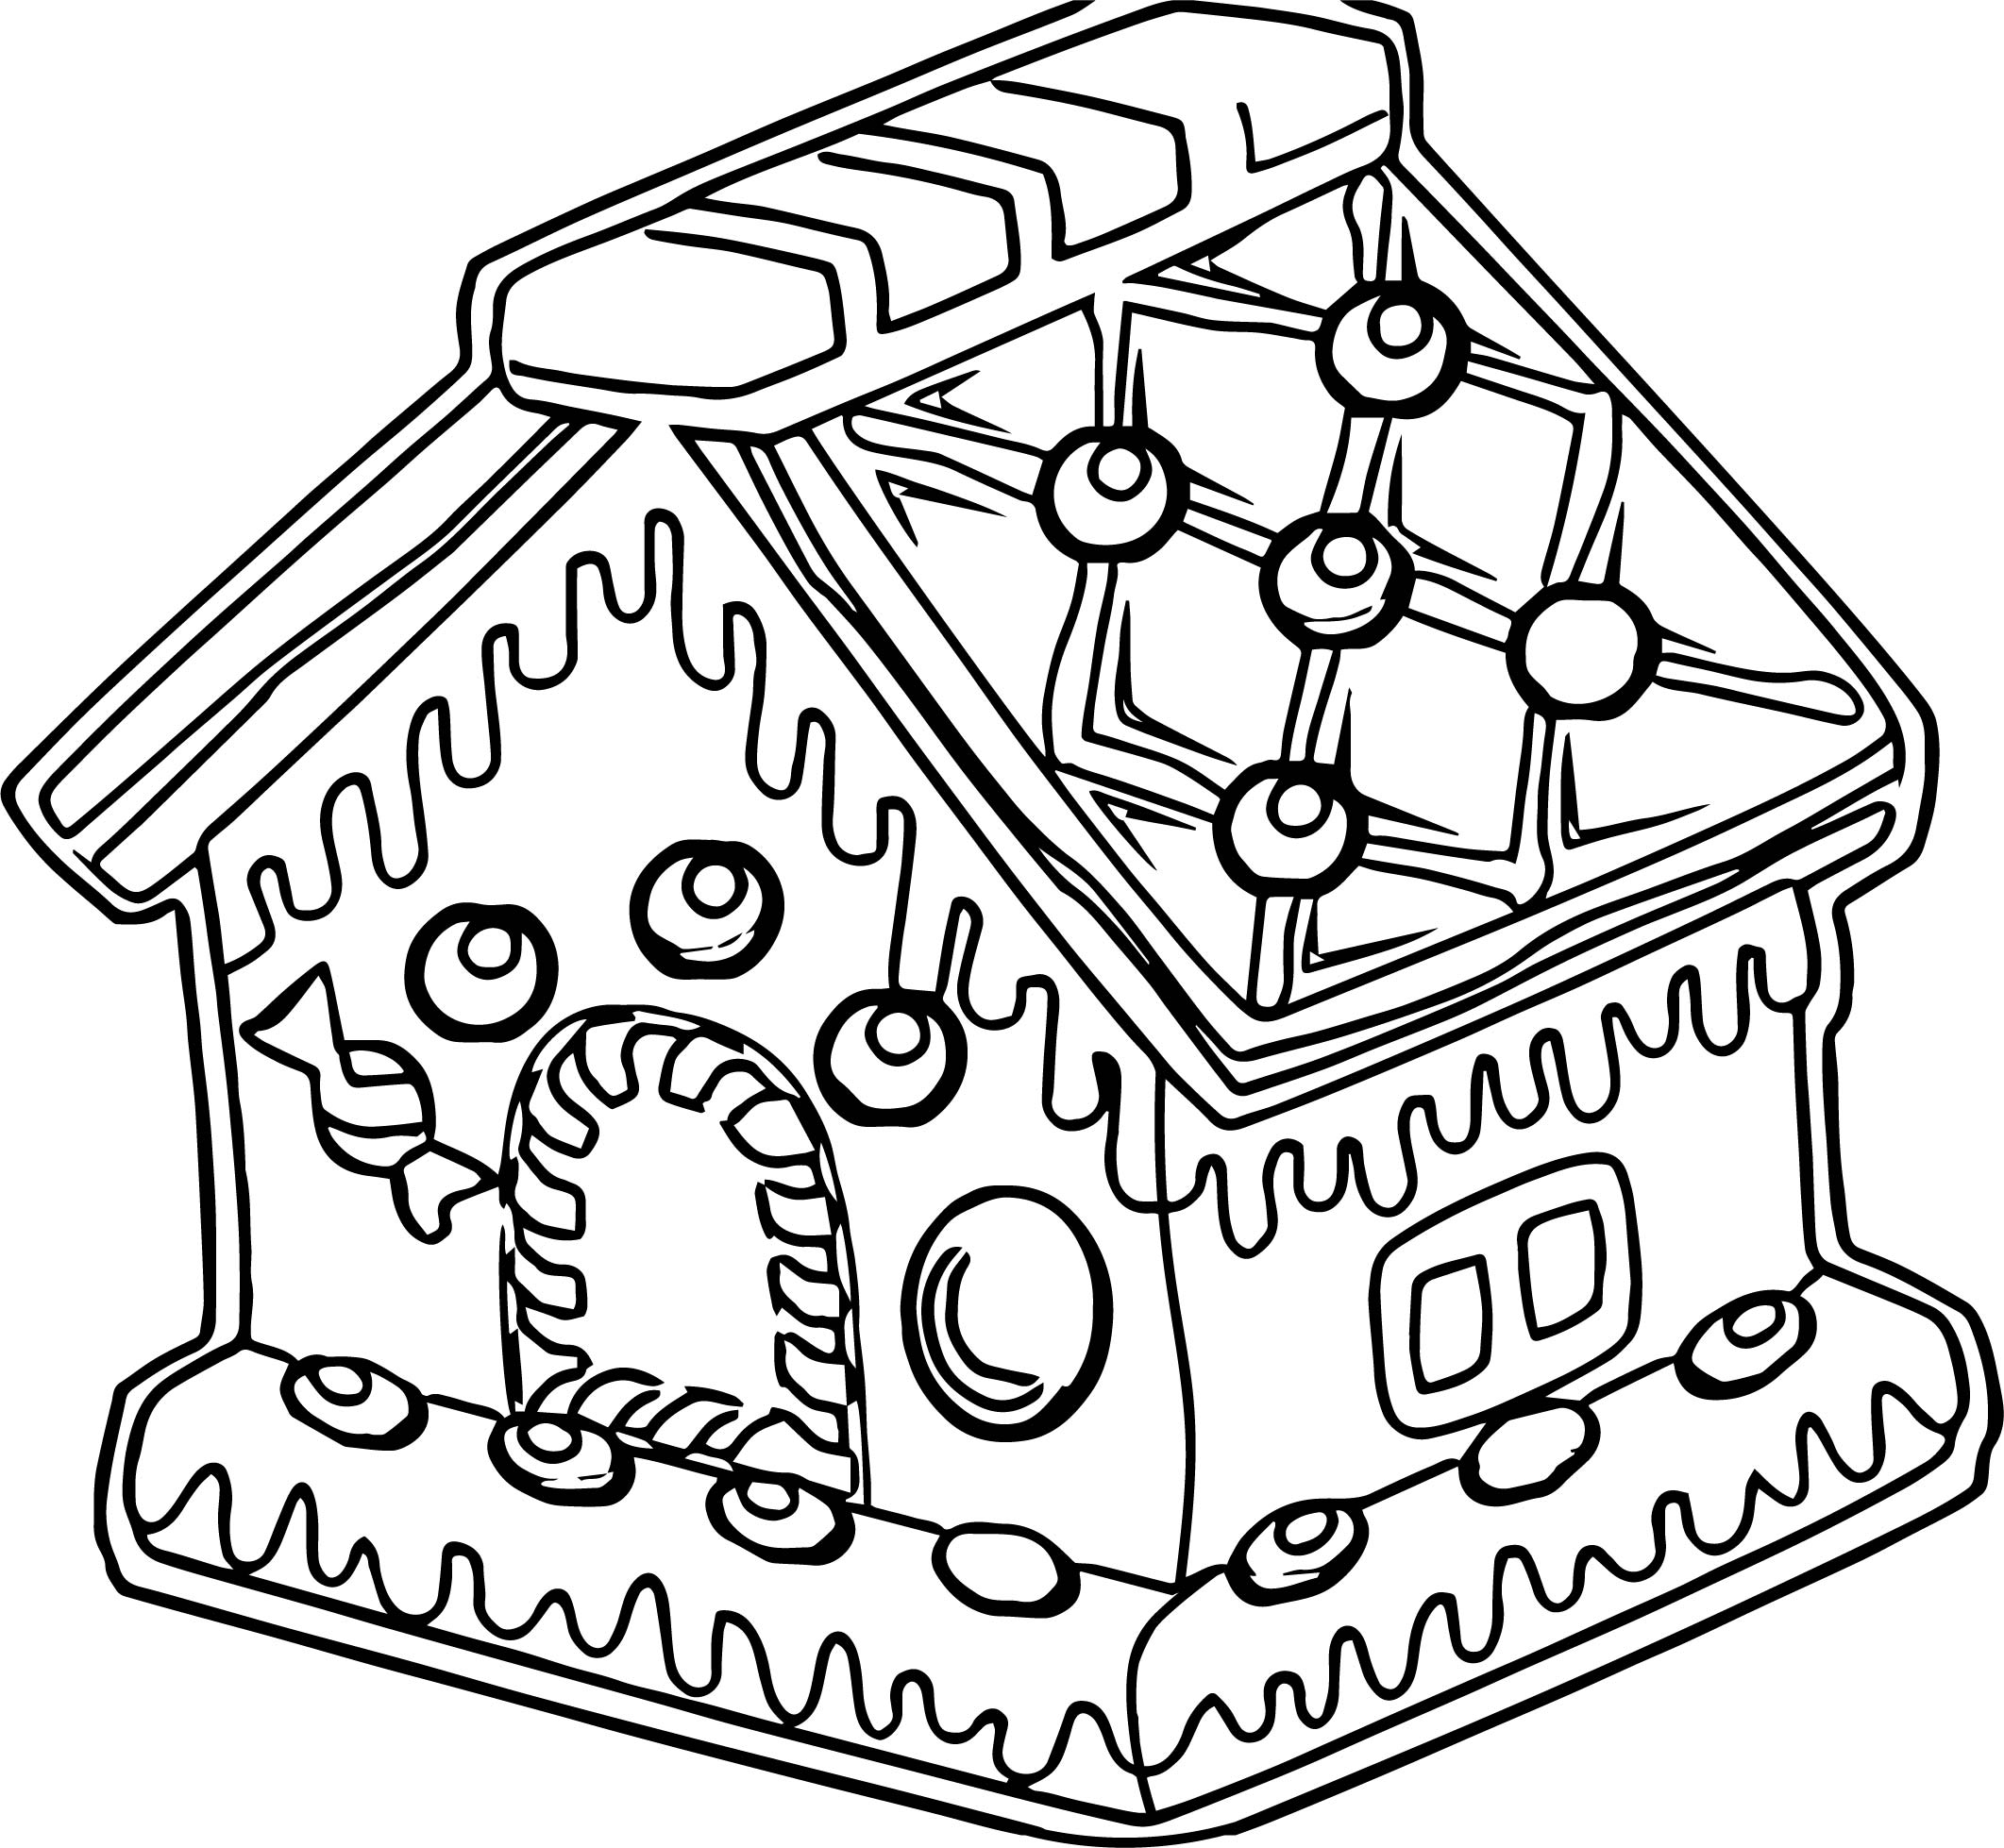 Now Gingerbread House Gingerbread House Coloring Page